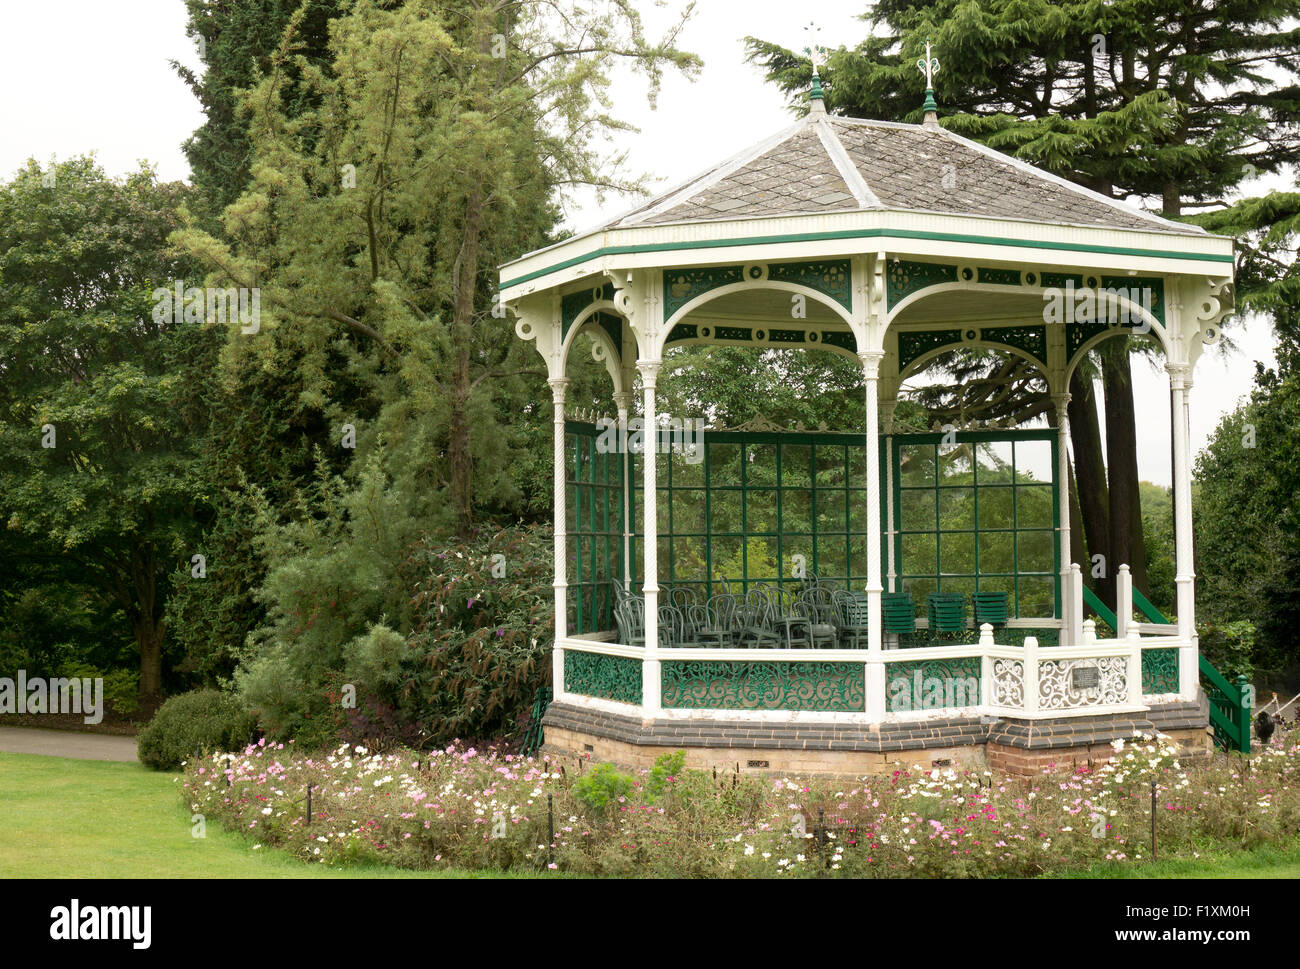 A bandstand in a British park - Stock Image